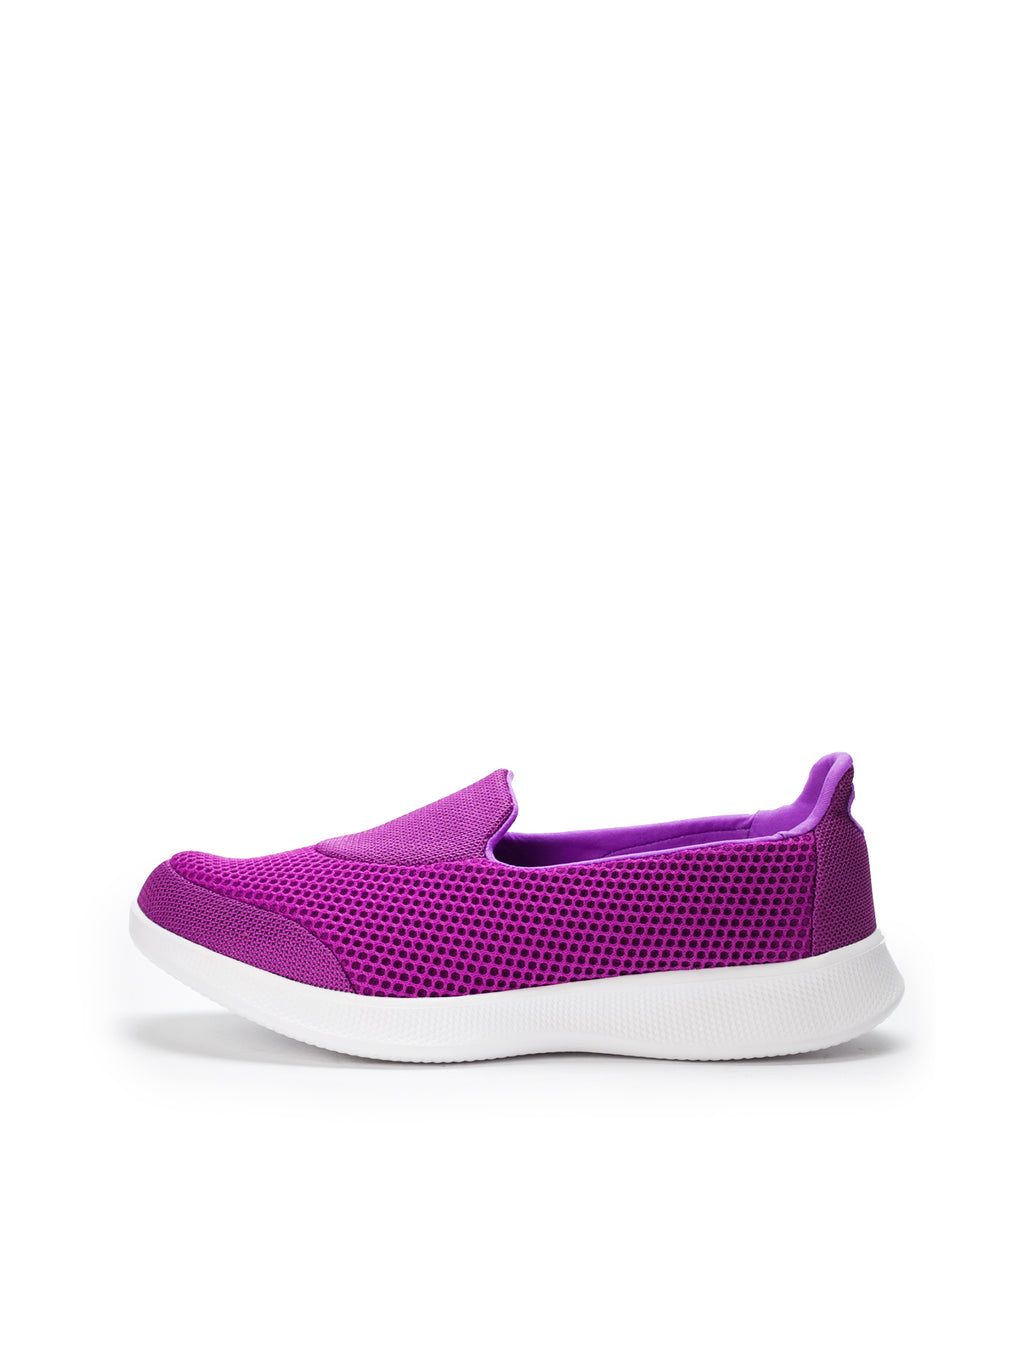 Larrie Purple Fashionable Casual Sporty Sneakers L61709-KN01SV-47-PURPLE